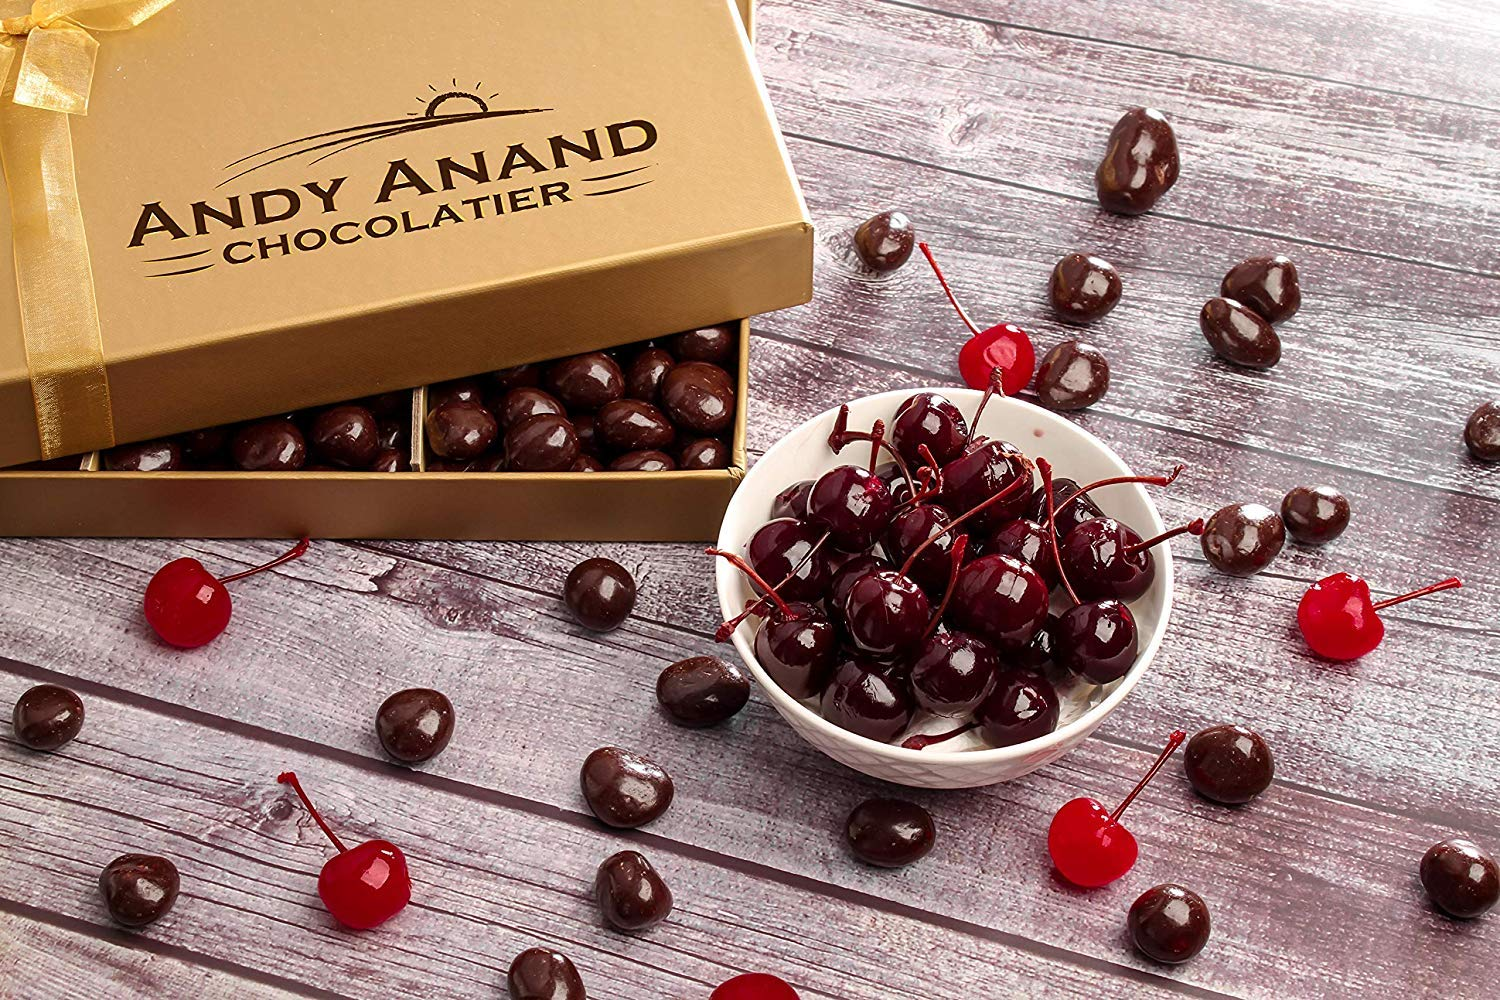 Andy Anand's California Dark Chocolate Covered Cherries for Birthday, Valentine Day, Gourmet Christmas Holiday Food Gift Basket, Thanksgiving, Mothers Fathers Day, Get Well Gift (2lb)